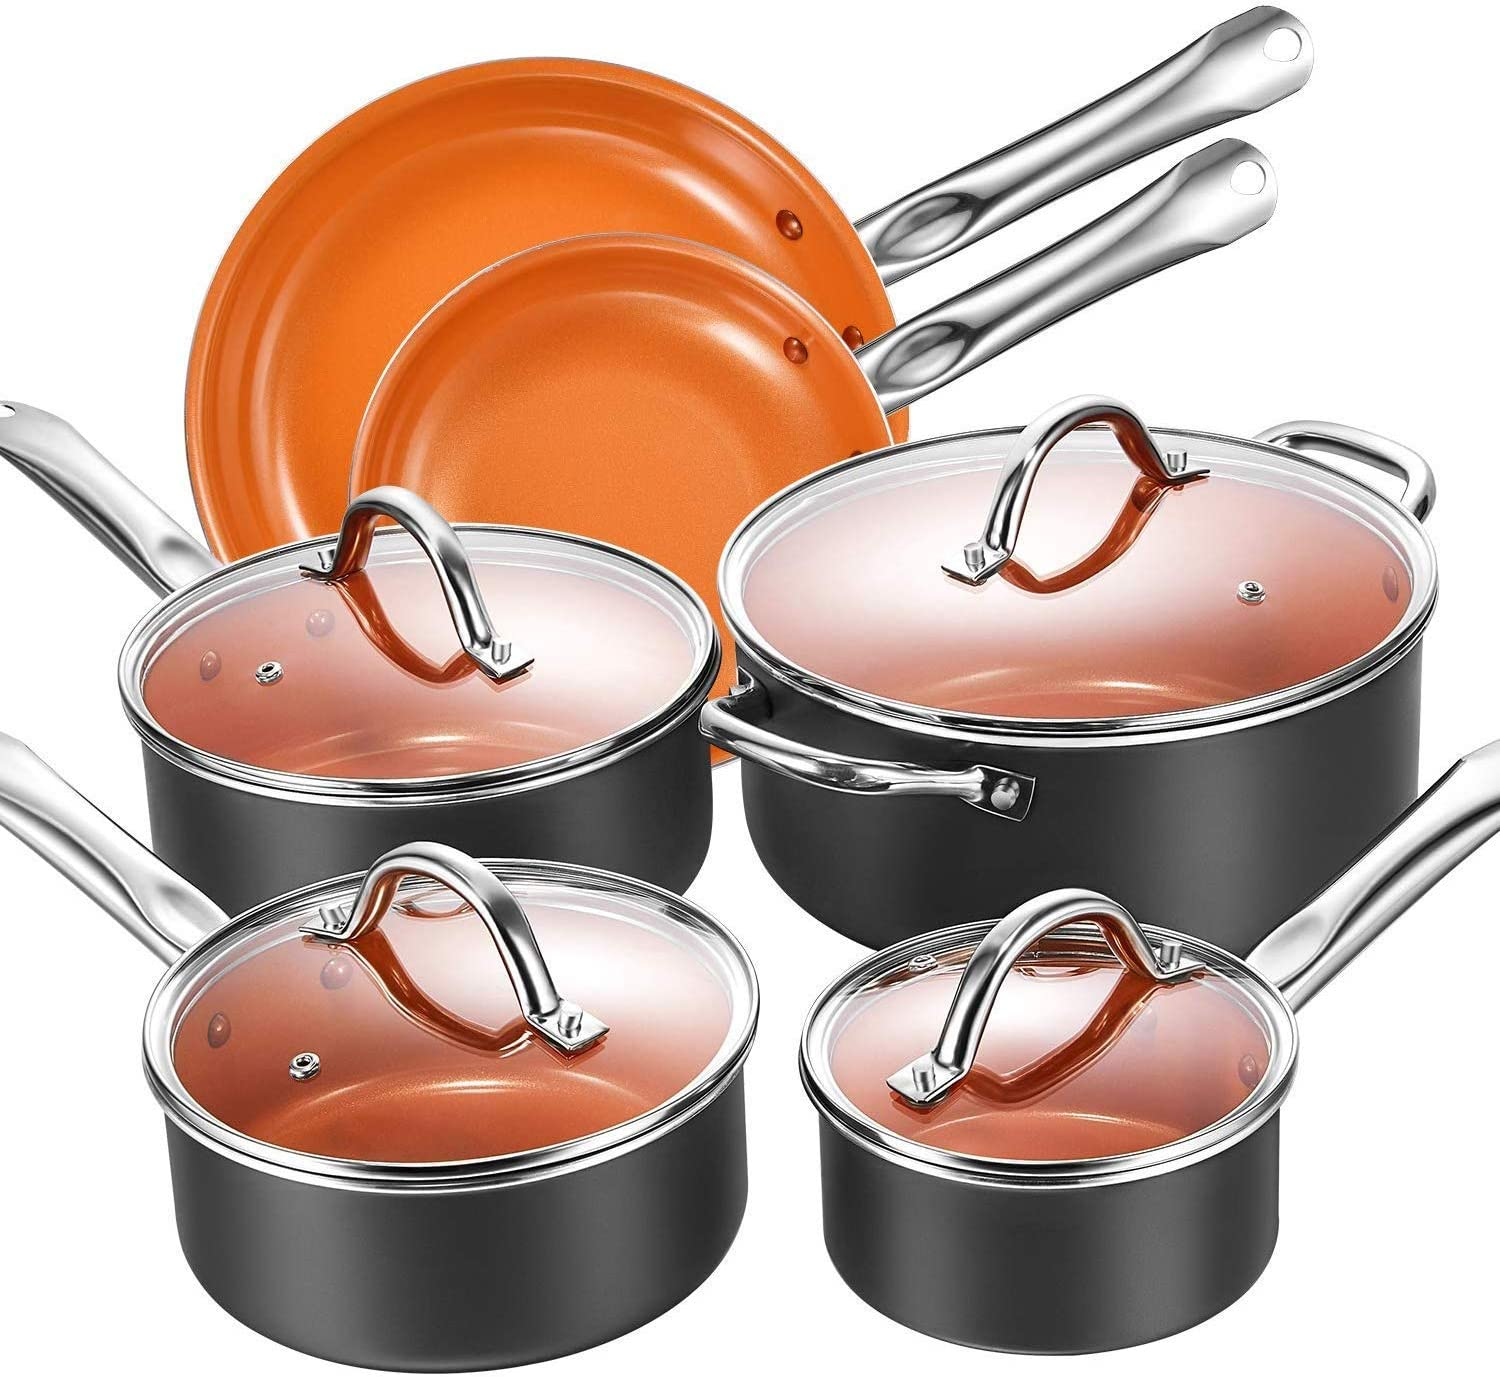 Aicook 10-Piece Non-Stick Induction Cookware Set